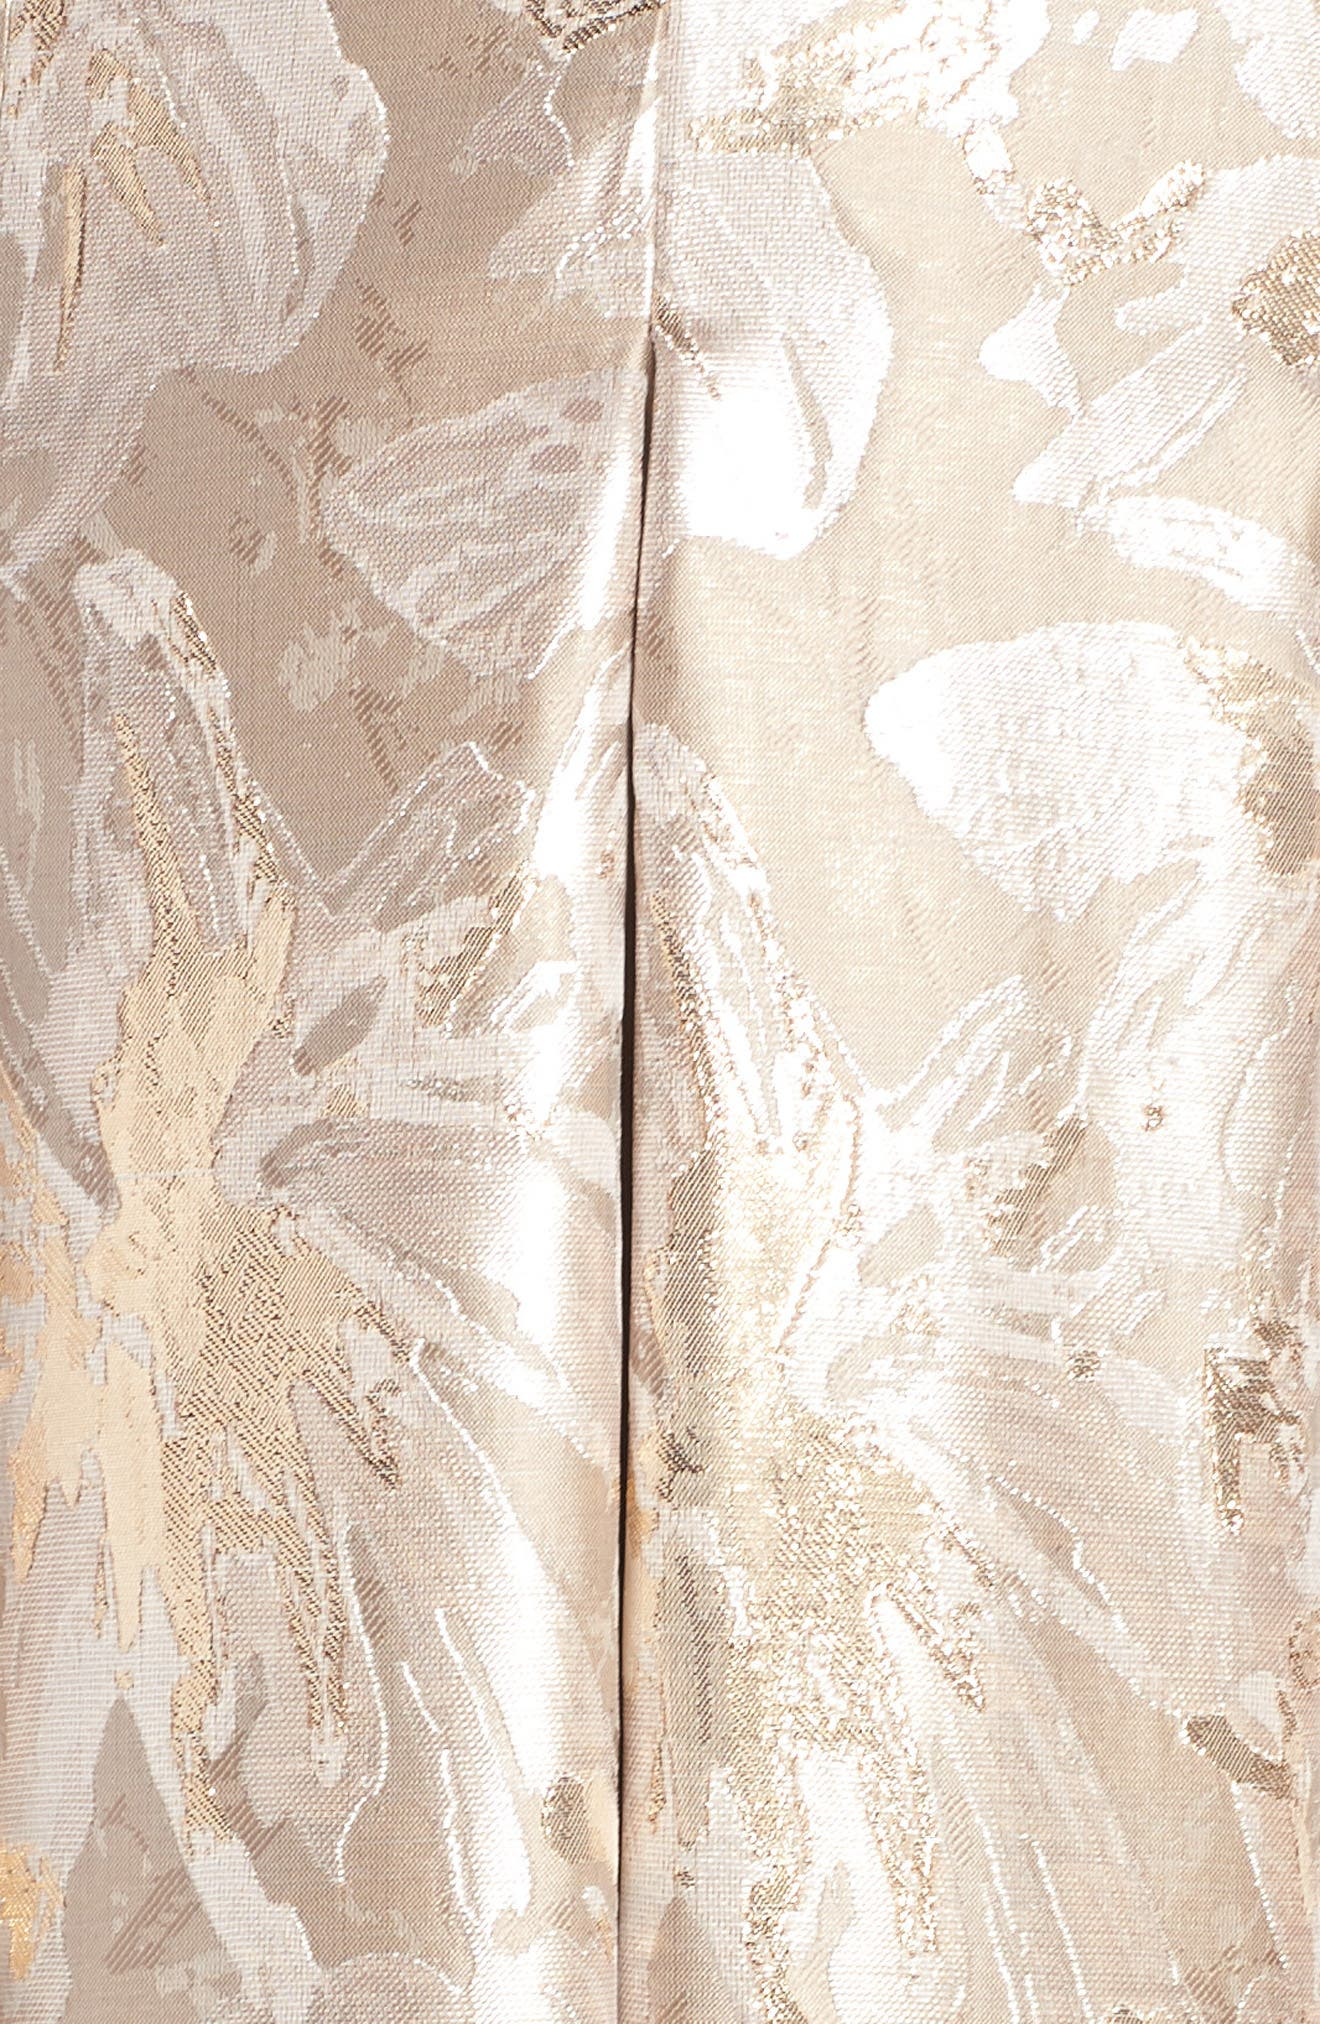 Bejeweled Neckline Strapless Ballgown,                             Alternate thumbnail 6, color,                             Champagne